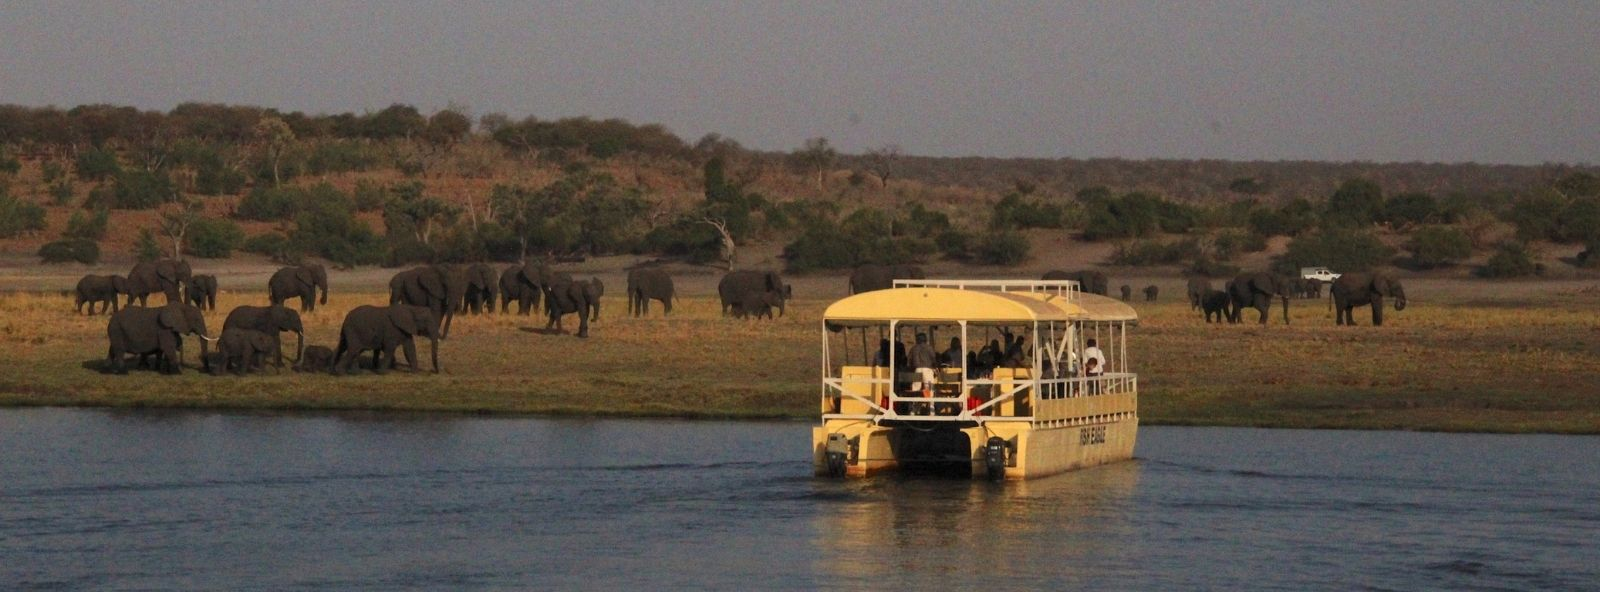 Sunset Game viewing by boat in Chobe - picture shows game viewing boat full of people on Chobe River enjoying a sighting of a herd of elephant on river bank